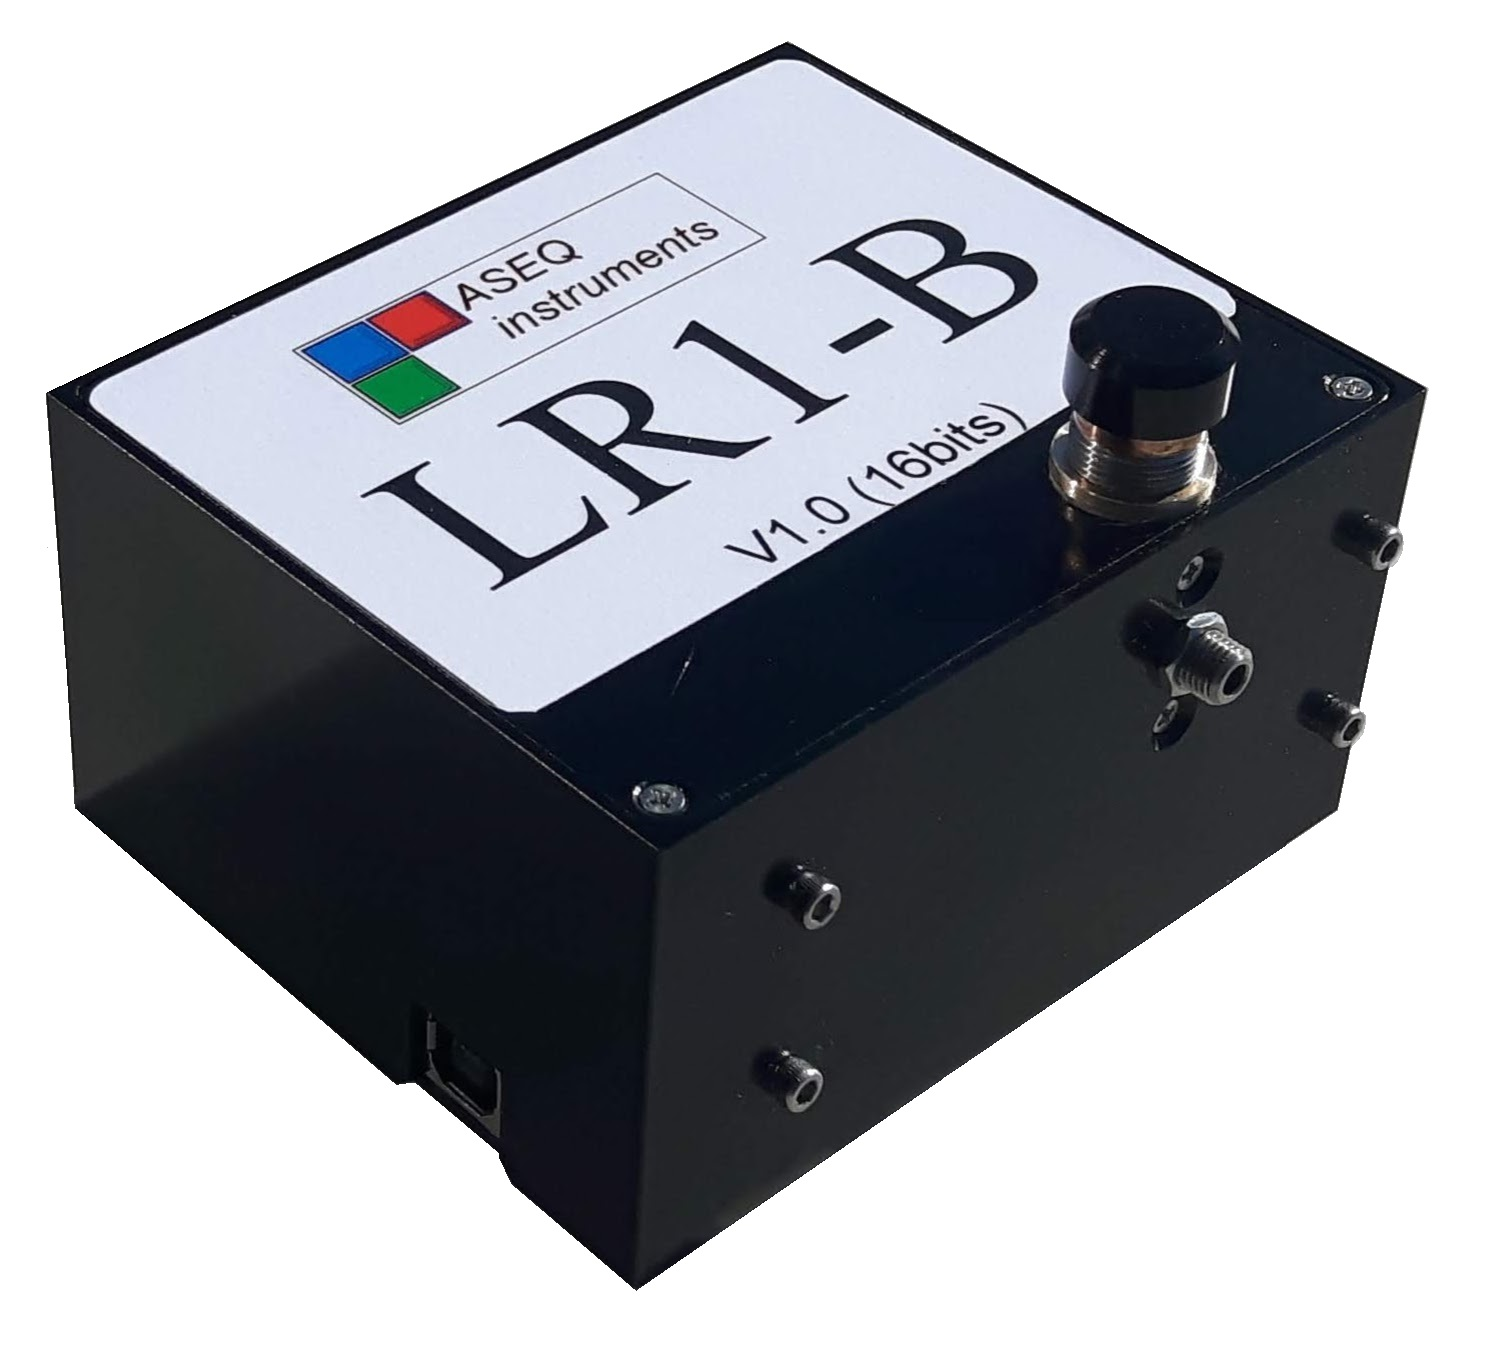 LR1 variable slit